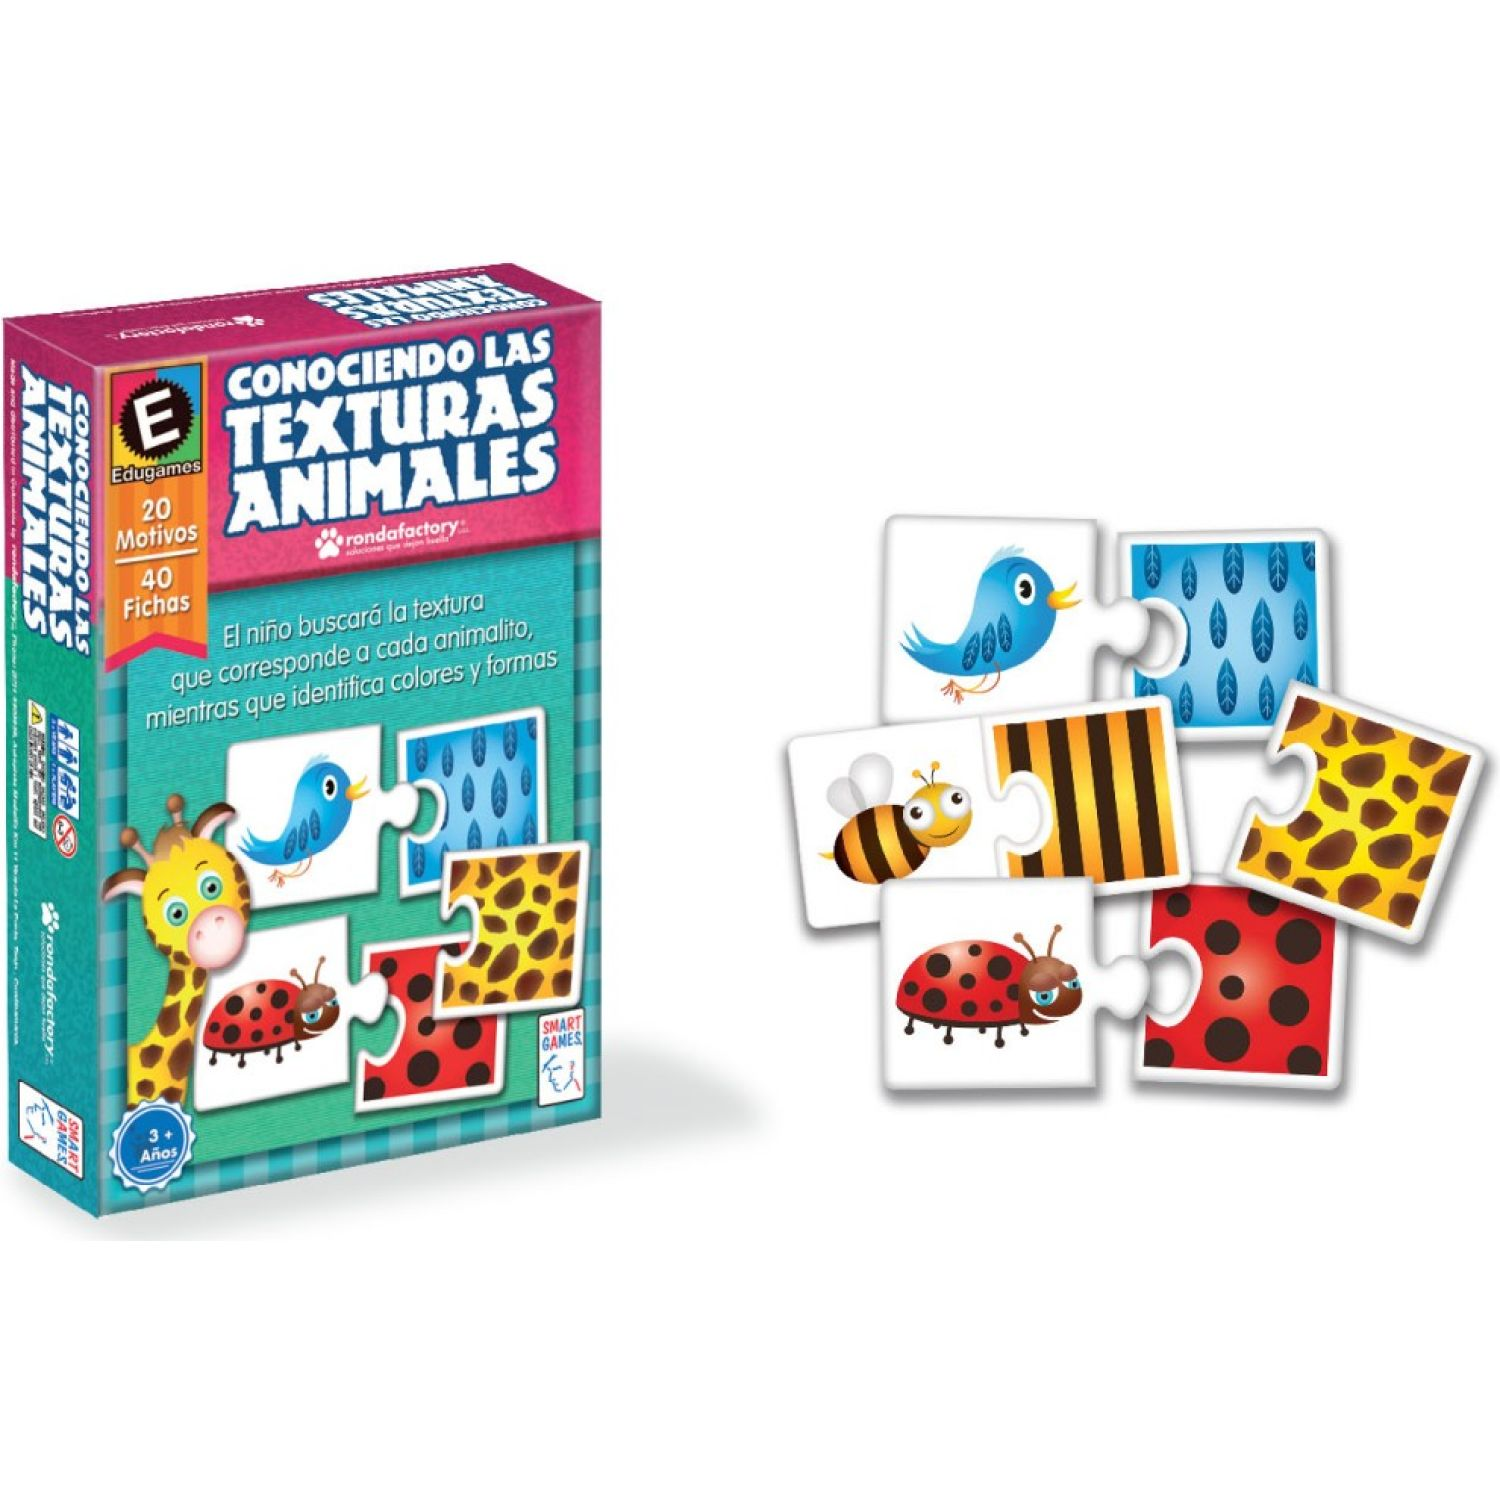 RONDA TEXTURA ANIMALES SMART GAMES MULTICOLOR Juegos de Mesa